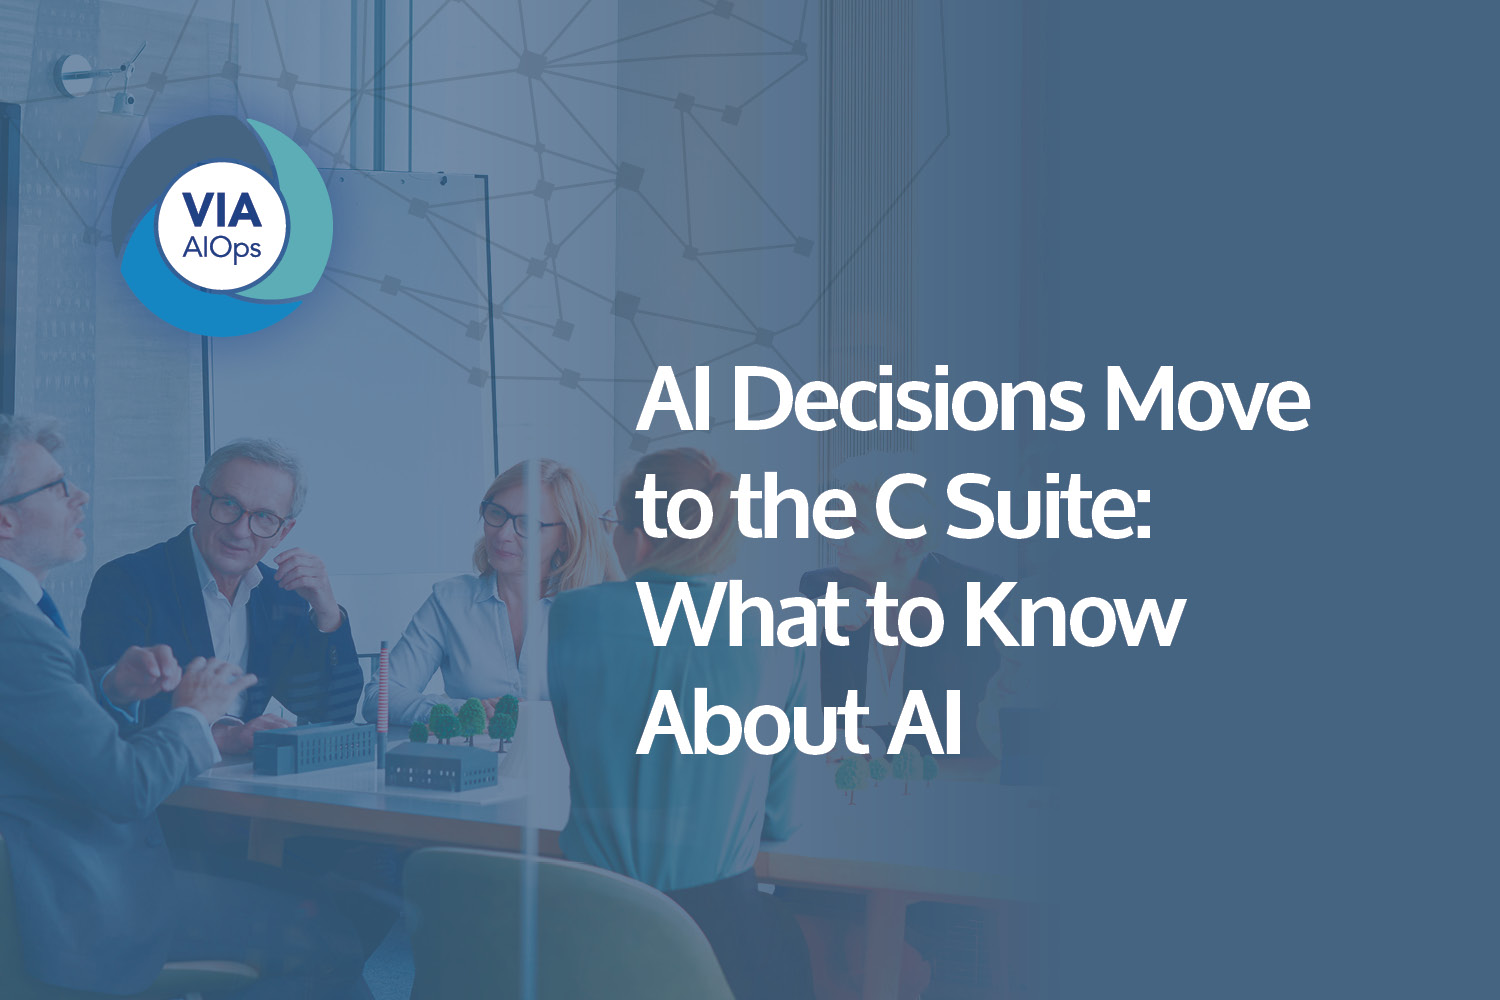 Download the White Paper: AI Decisions Move to the C Suite: What to Know About AI